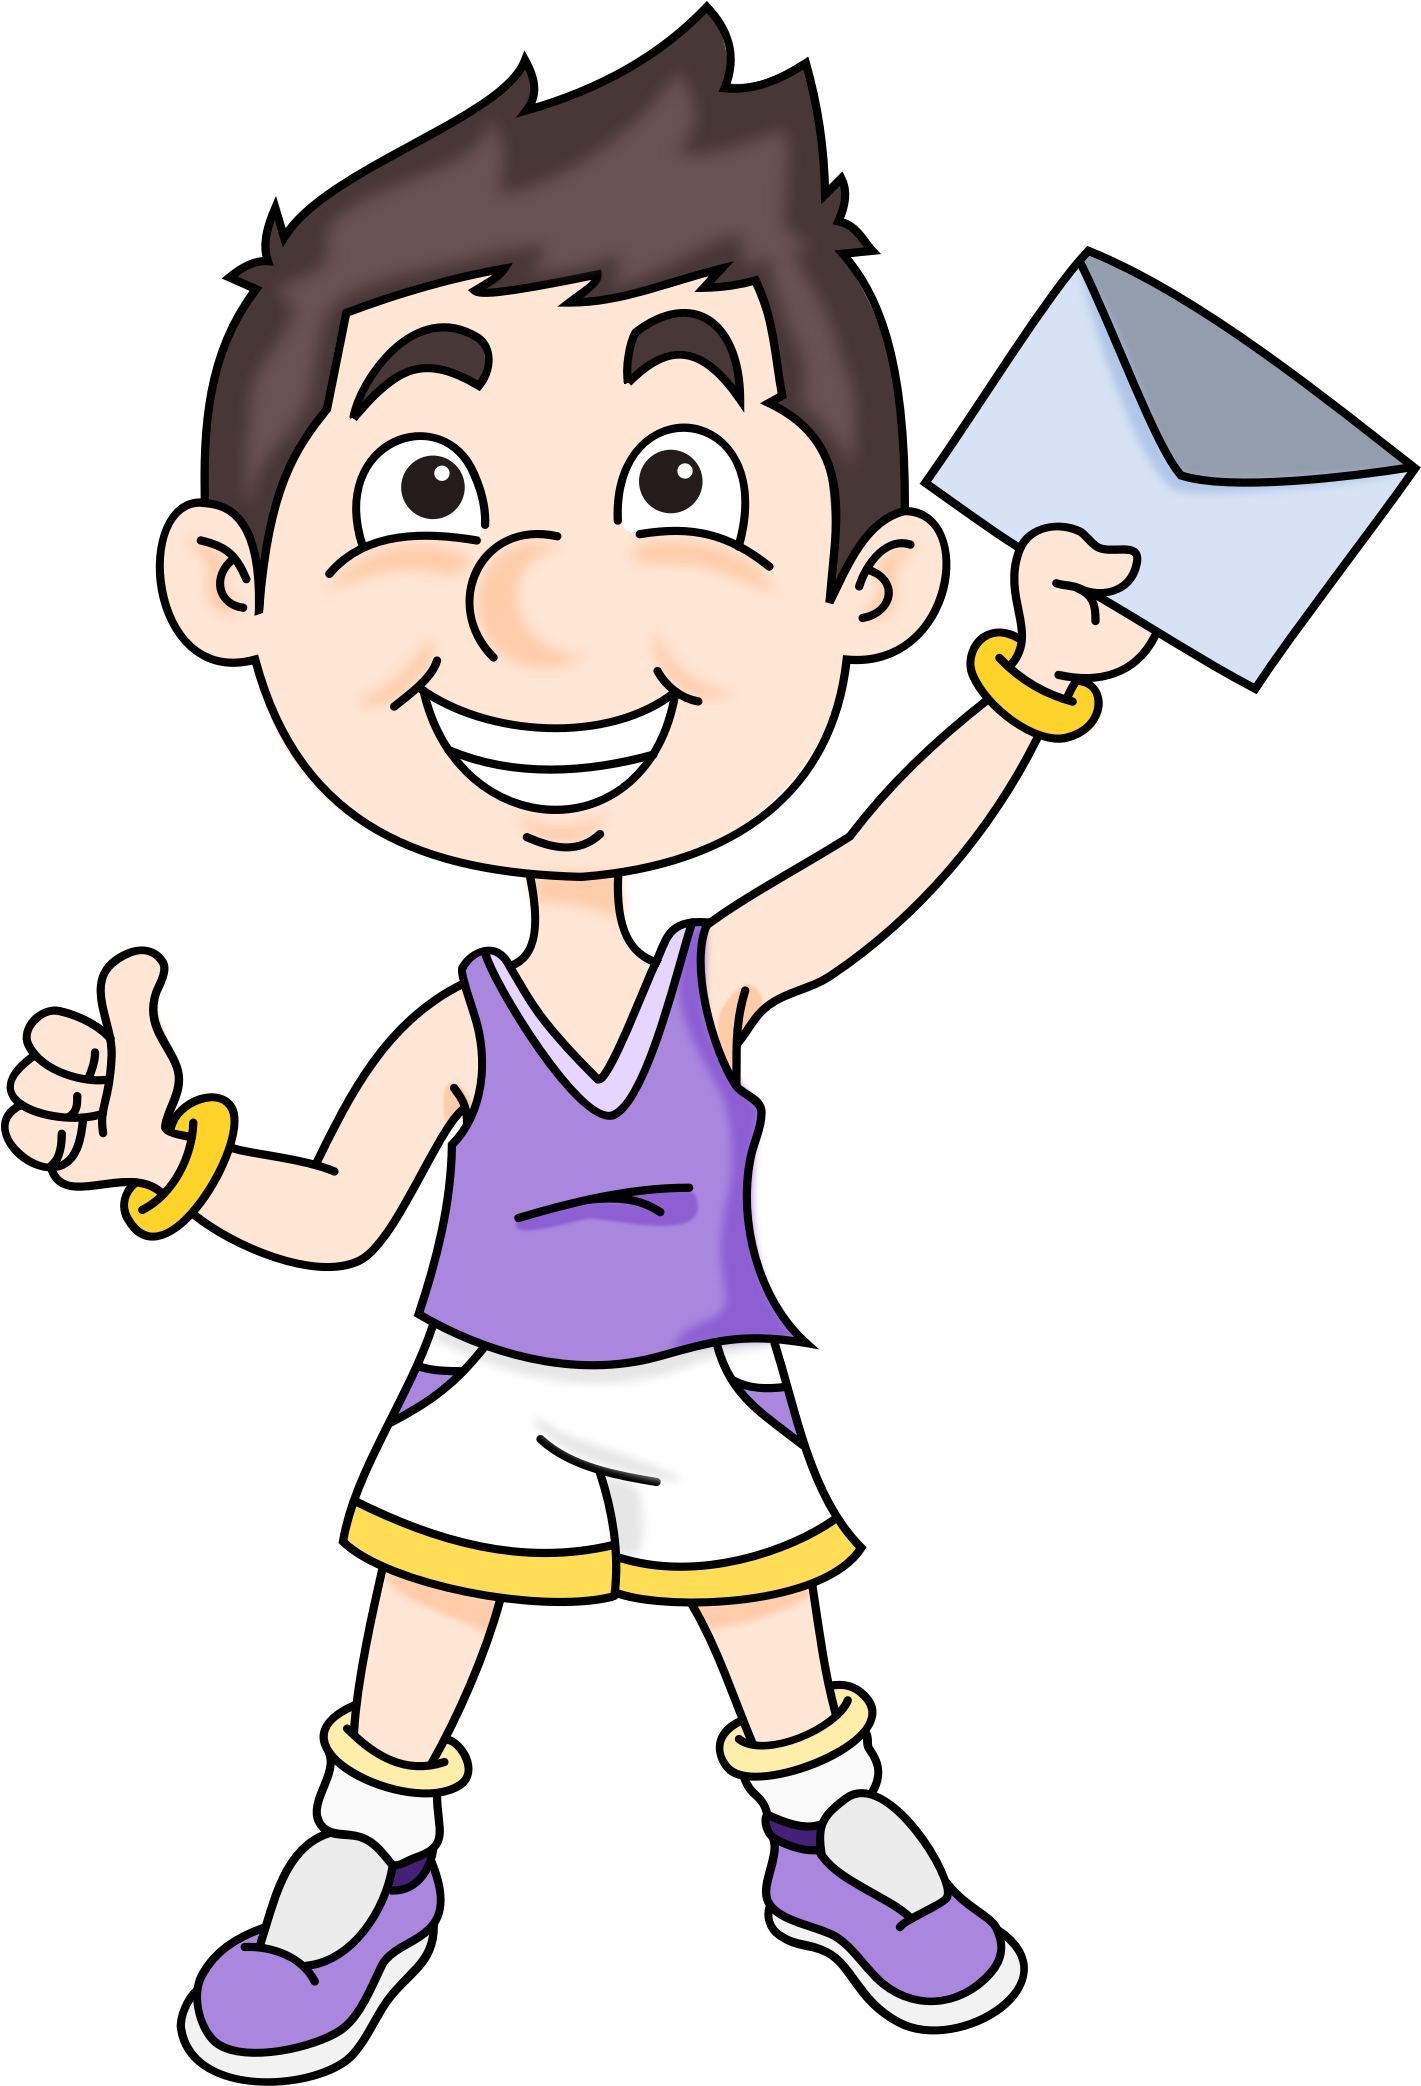 Mail boy big image. Race clipart kid athletic